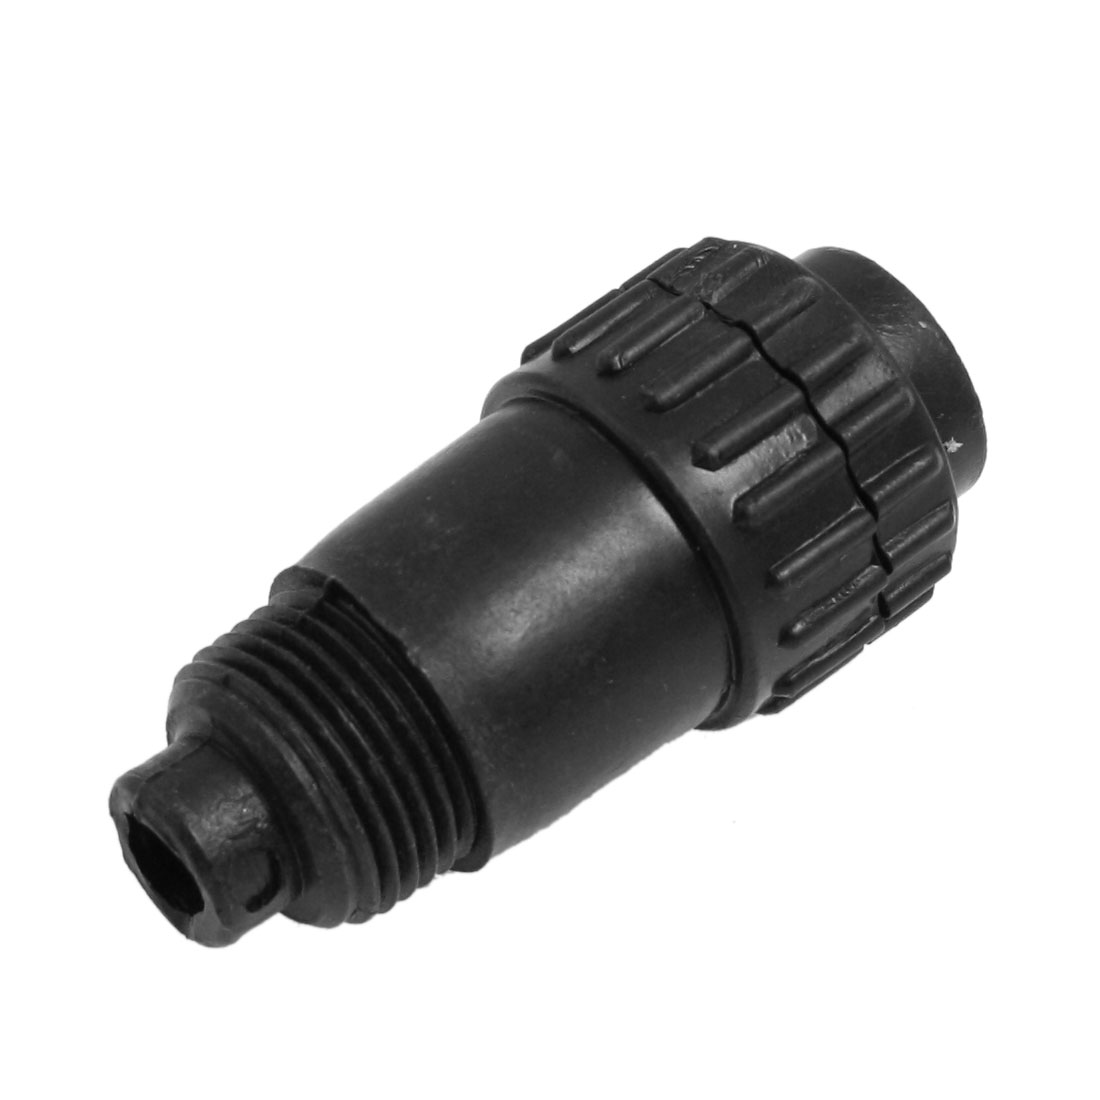 "Black Plastic Air Exhaust Pneumatic Muffler Filter 1/2"" NPT Thread"